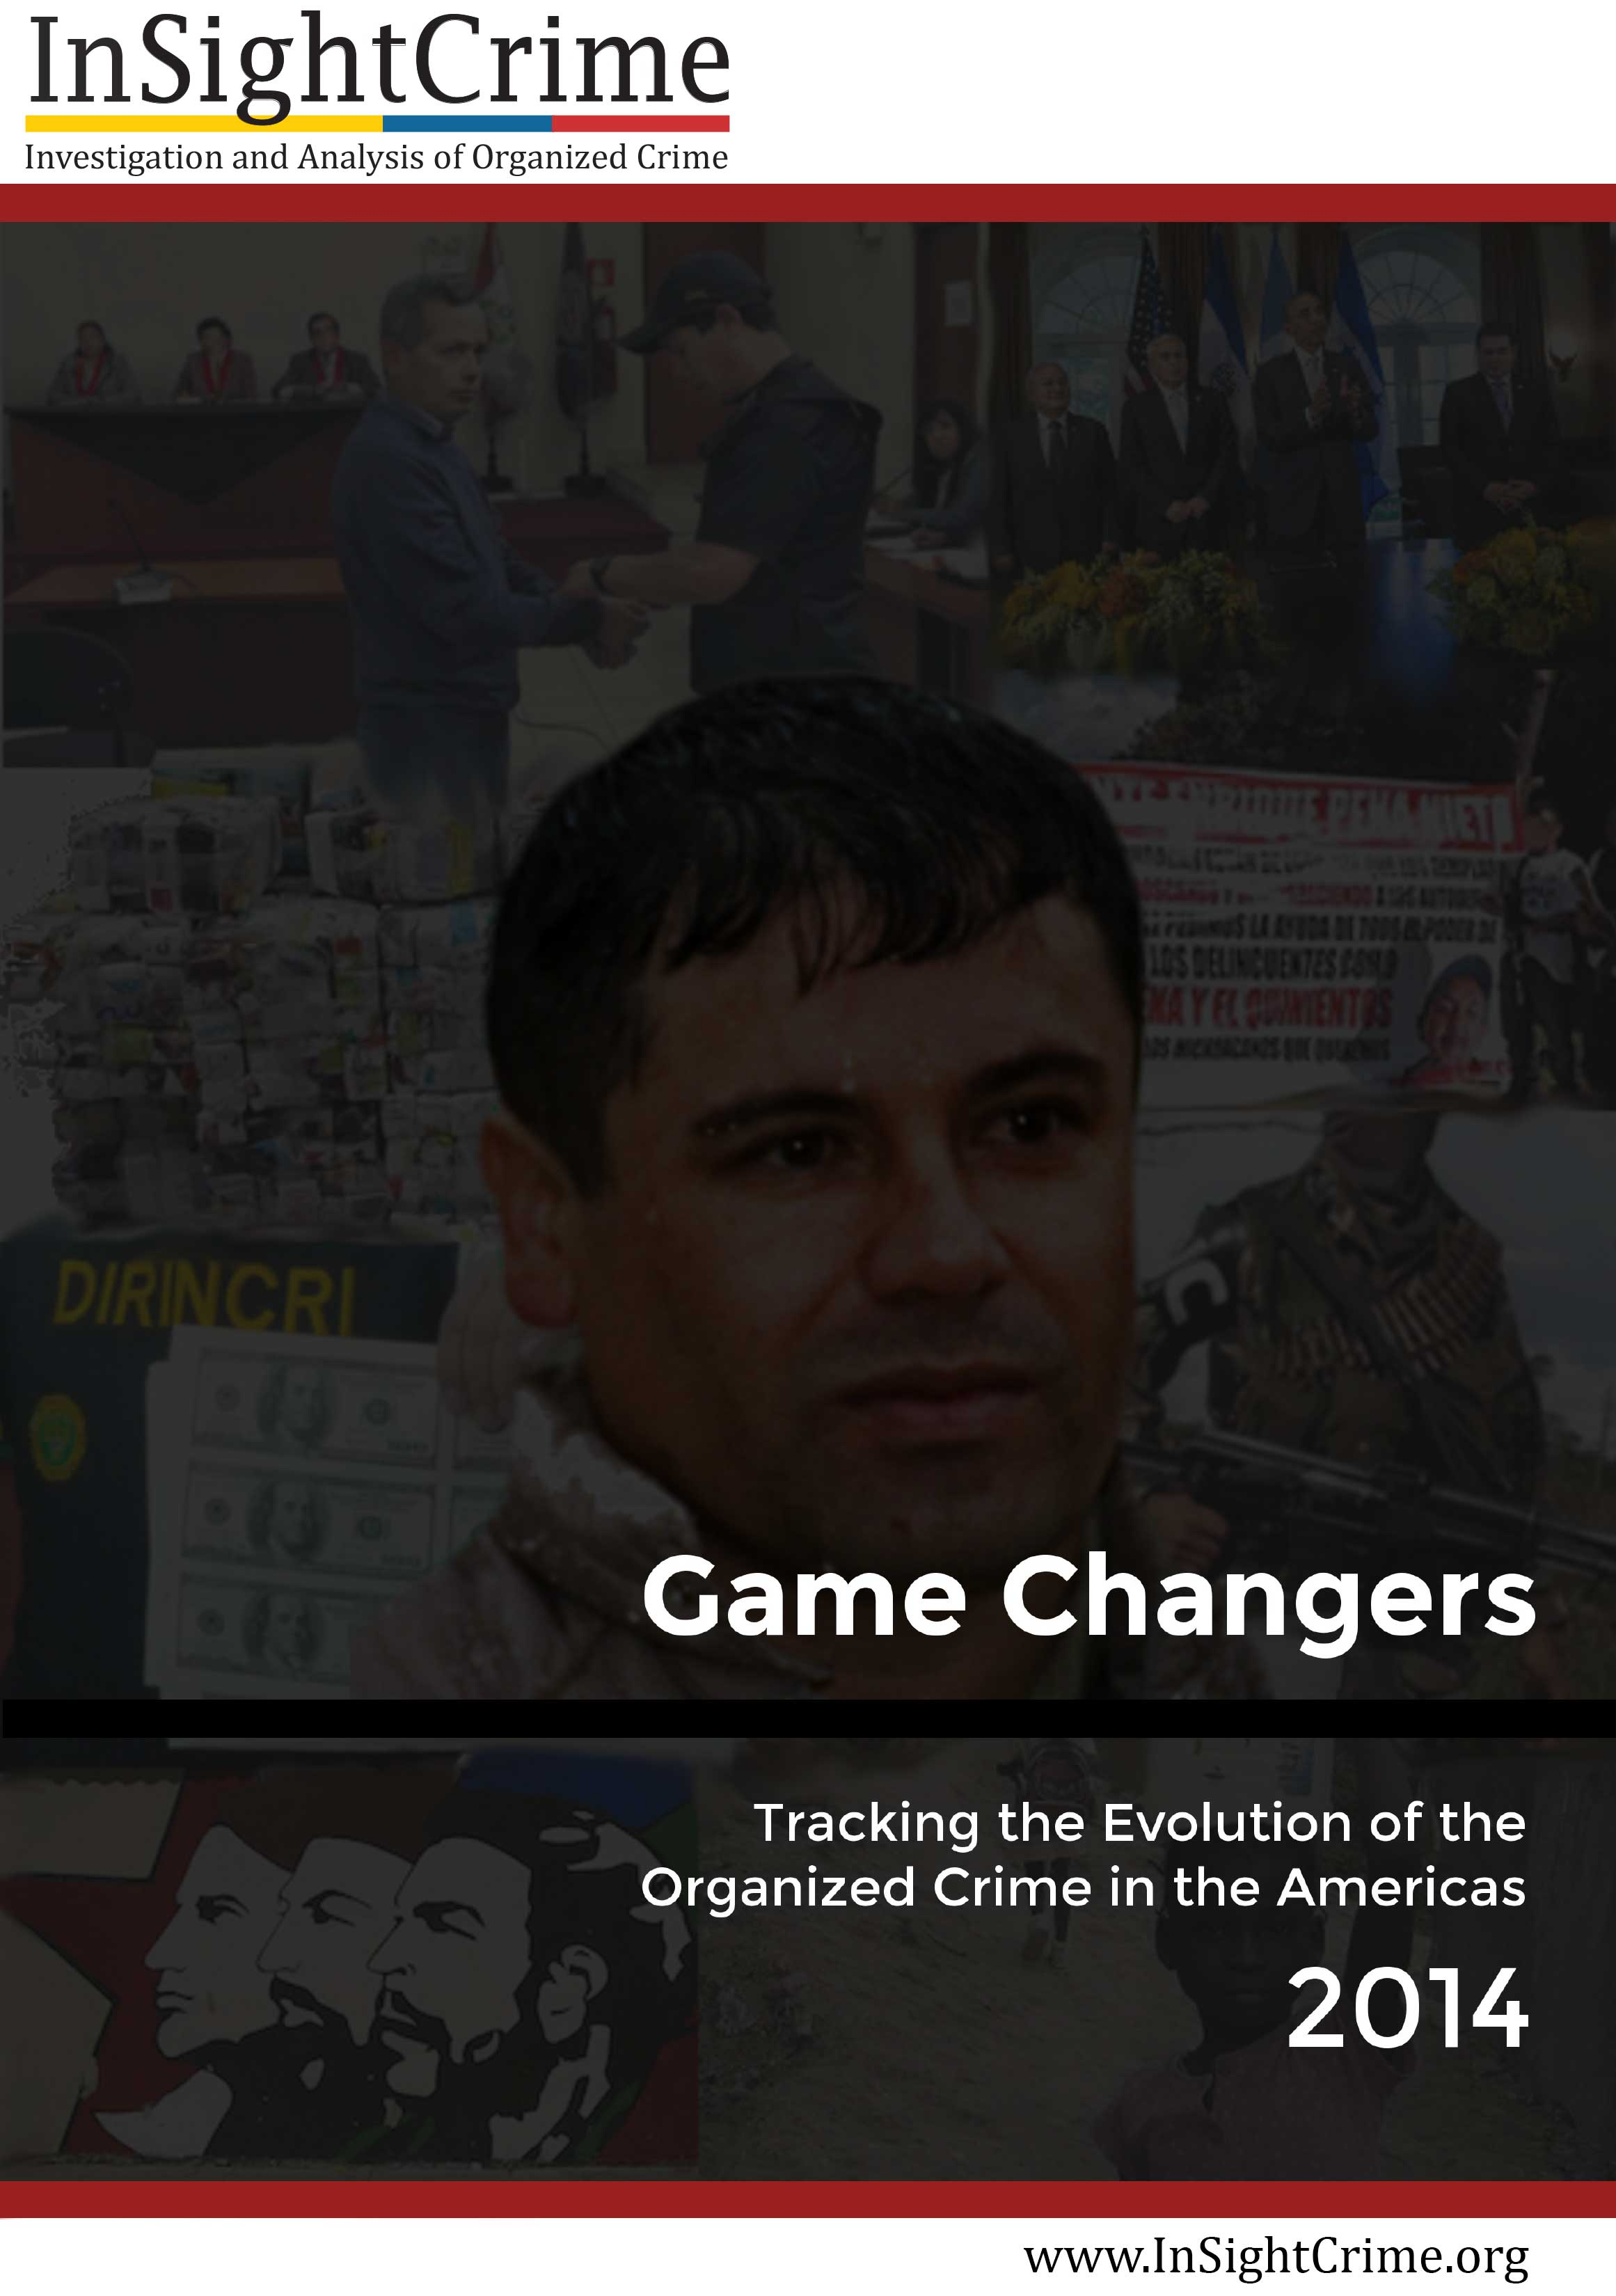 20141230 game changers 2014 cover